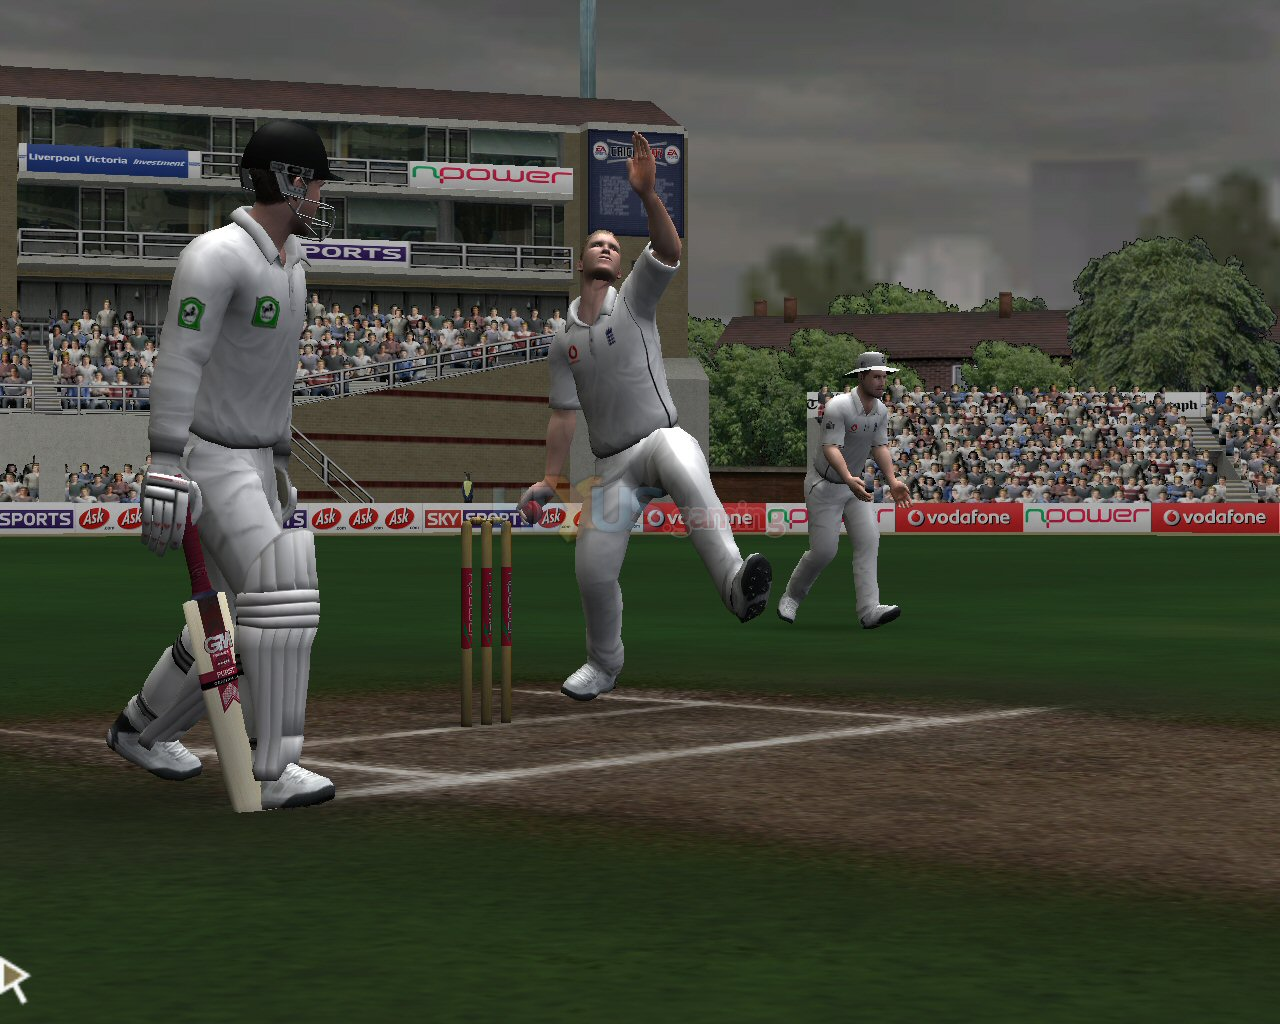 windows 7 cricket games download free full version